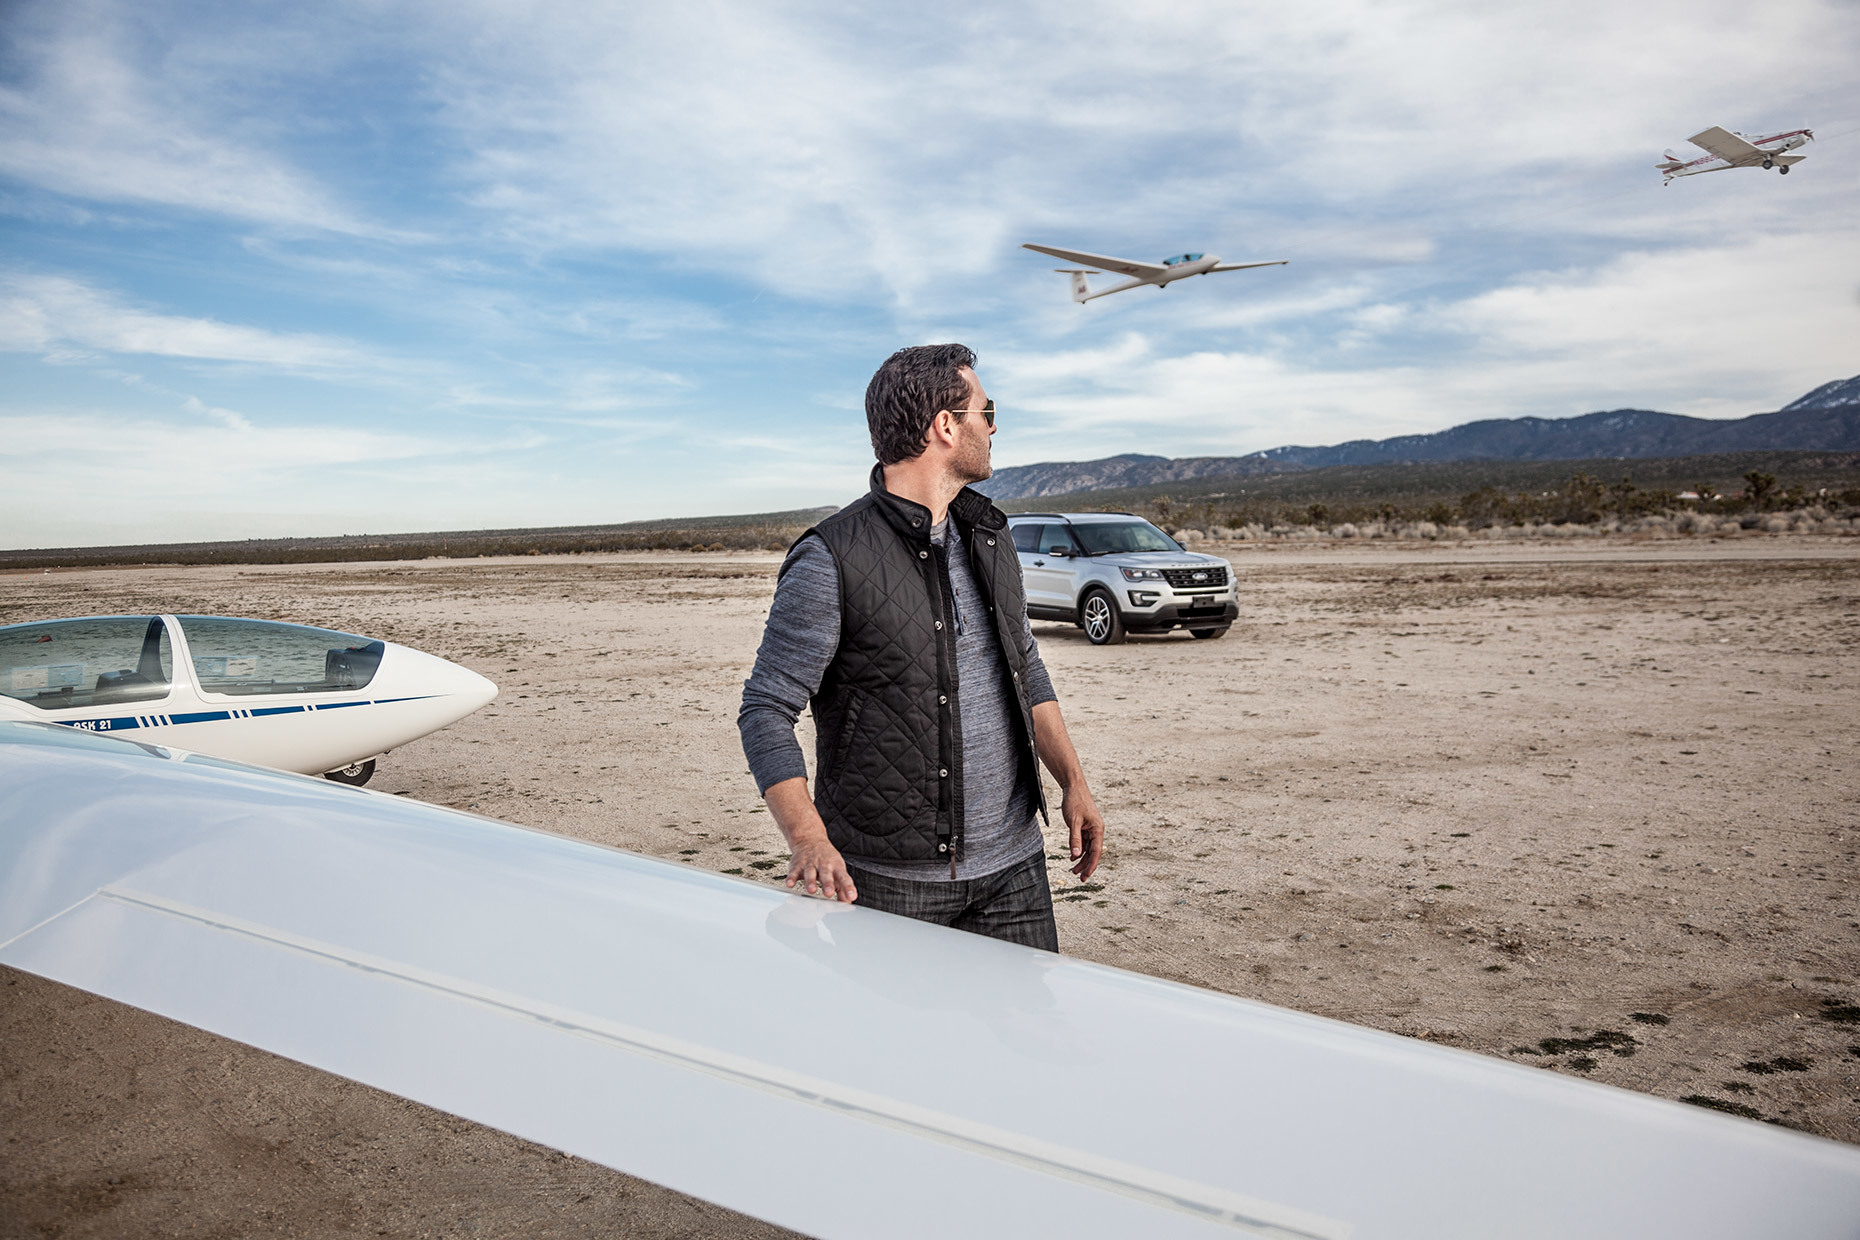 Christopher Nelson Photography|Ford Explorer|Silver|Gliders|Desert